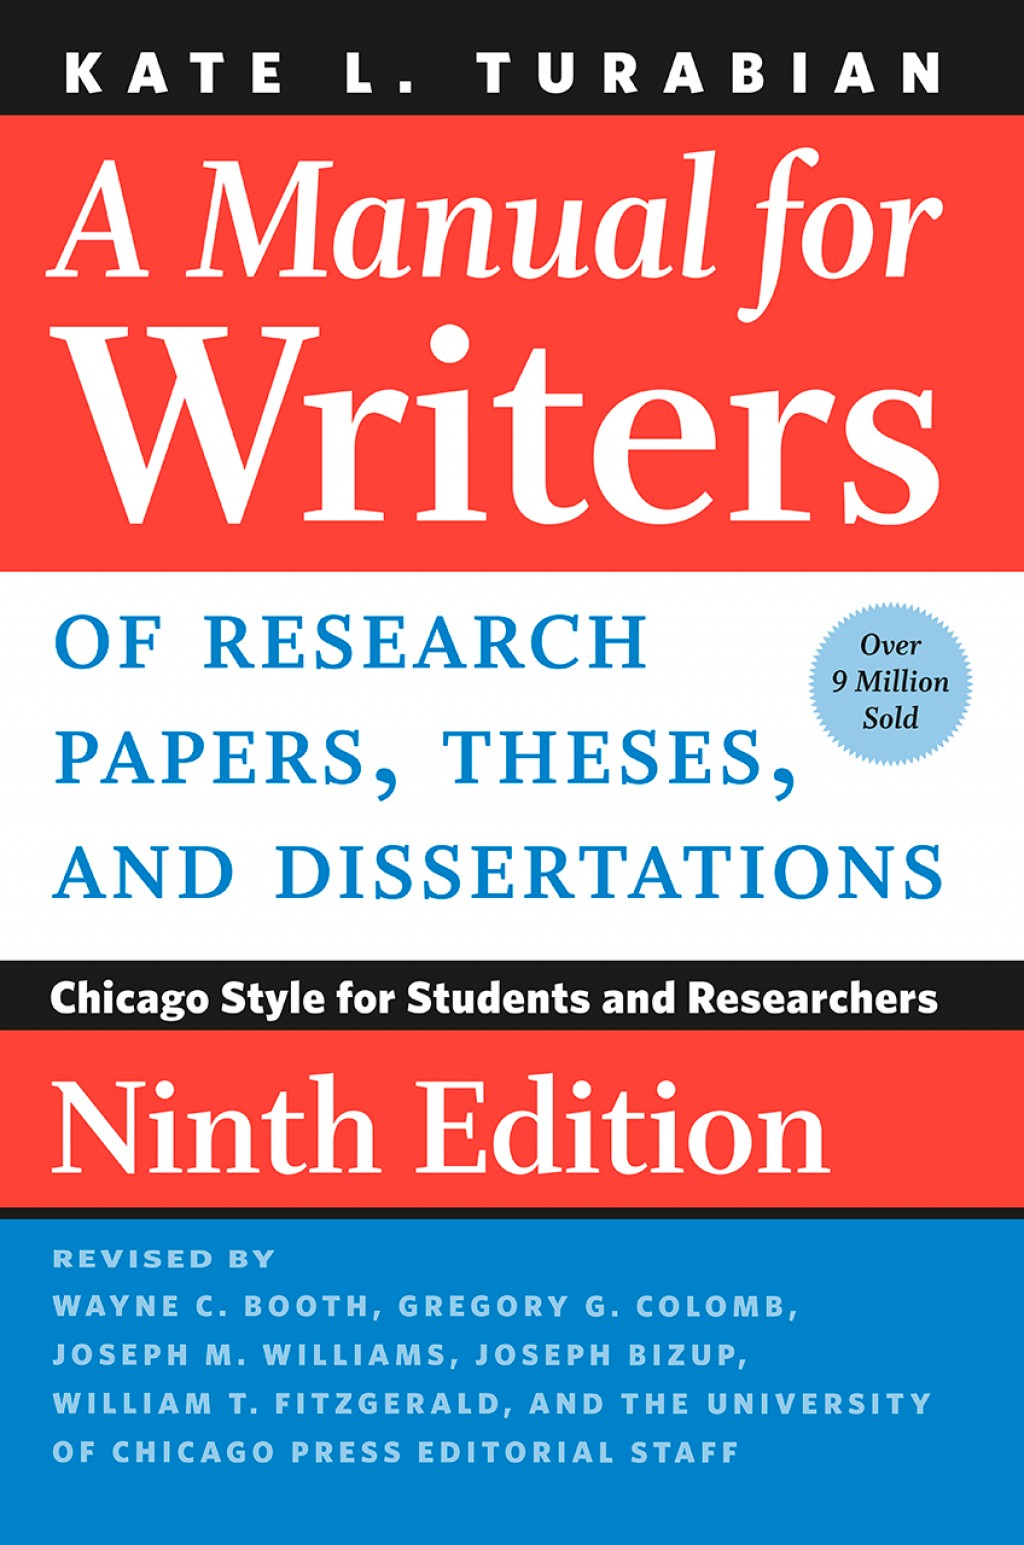 007 Manual For Writers Of Research Papers Theses And Dissertations Download Paper Rare A Pdf Large